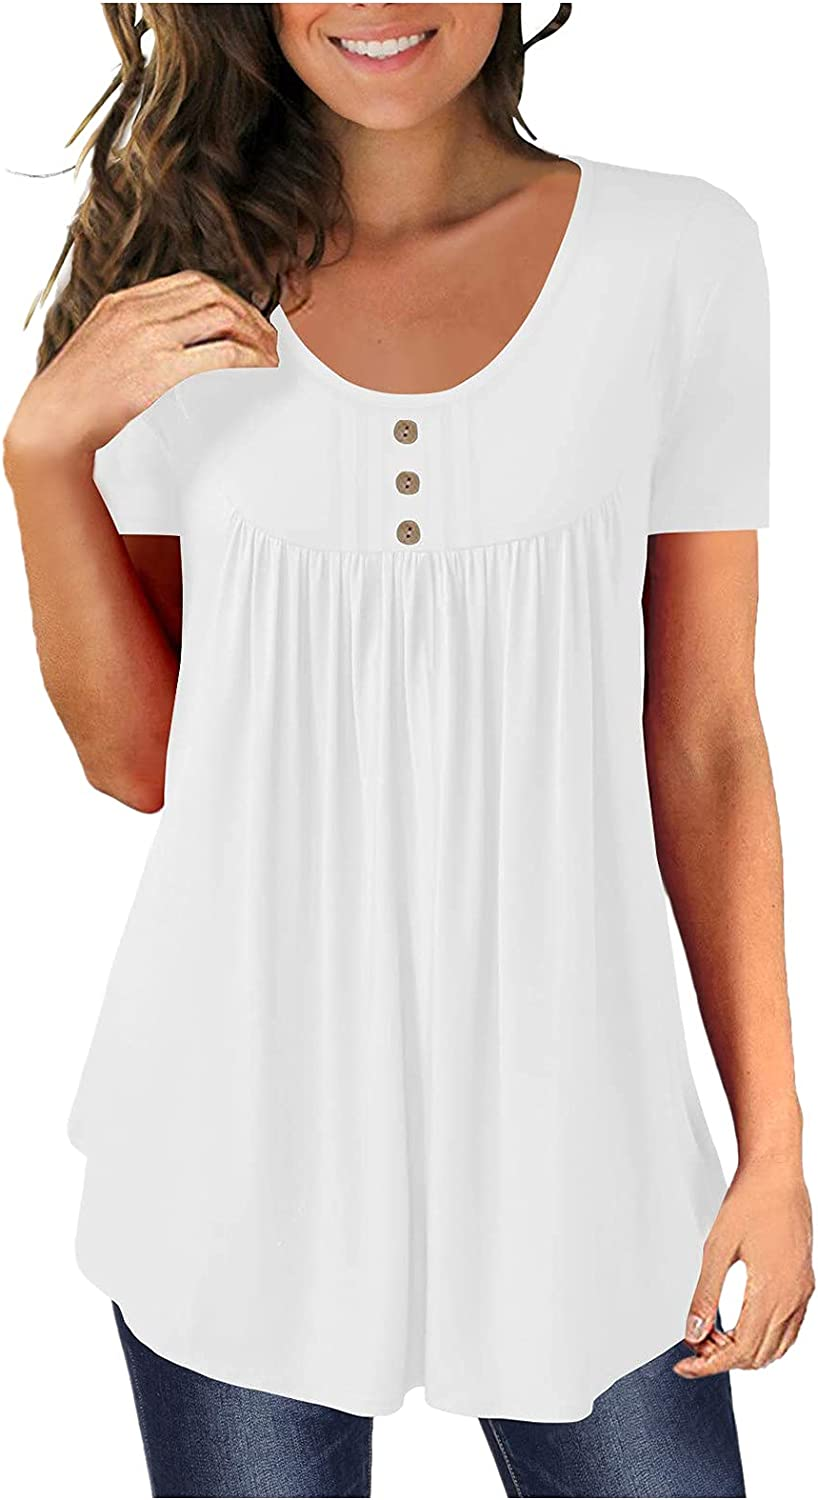 Eduavar Tops for Women Summer,Womens Fashion Gardient Color Short Sleeve V Neck T Shirts Casual Loose Tunic Tee Blouses